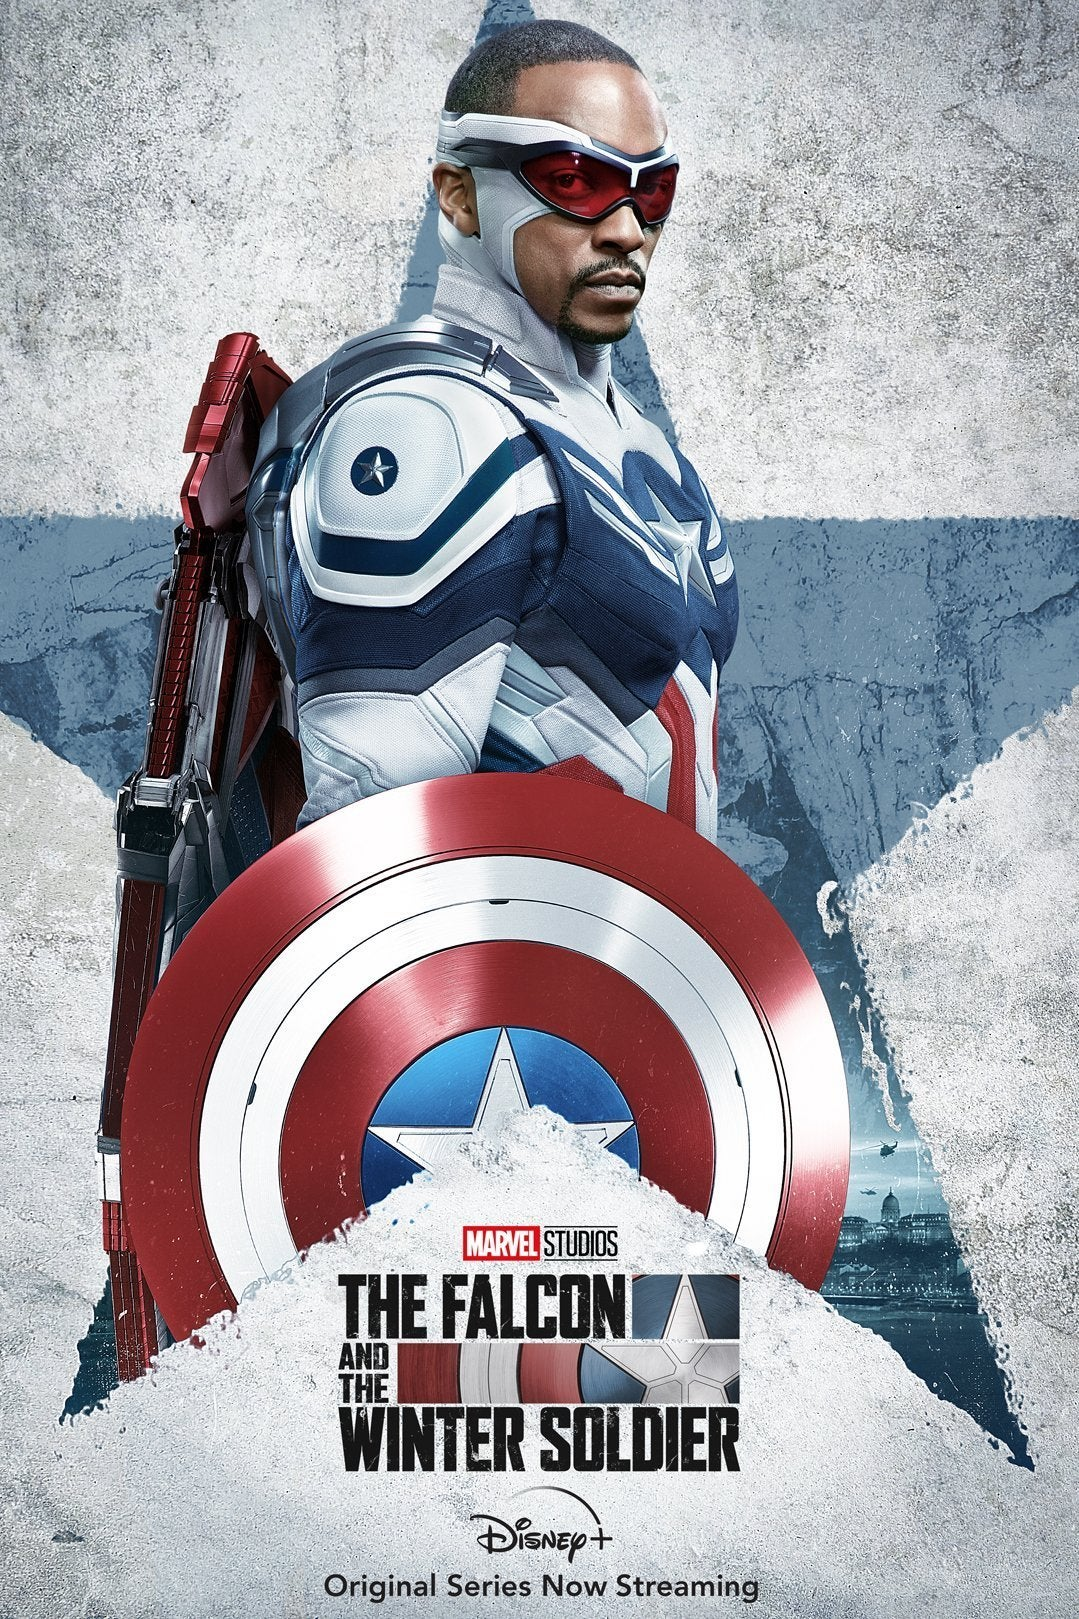 Sam Wilson replaces Steve Rogers on Captain America social media pages 16